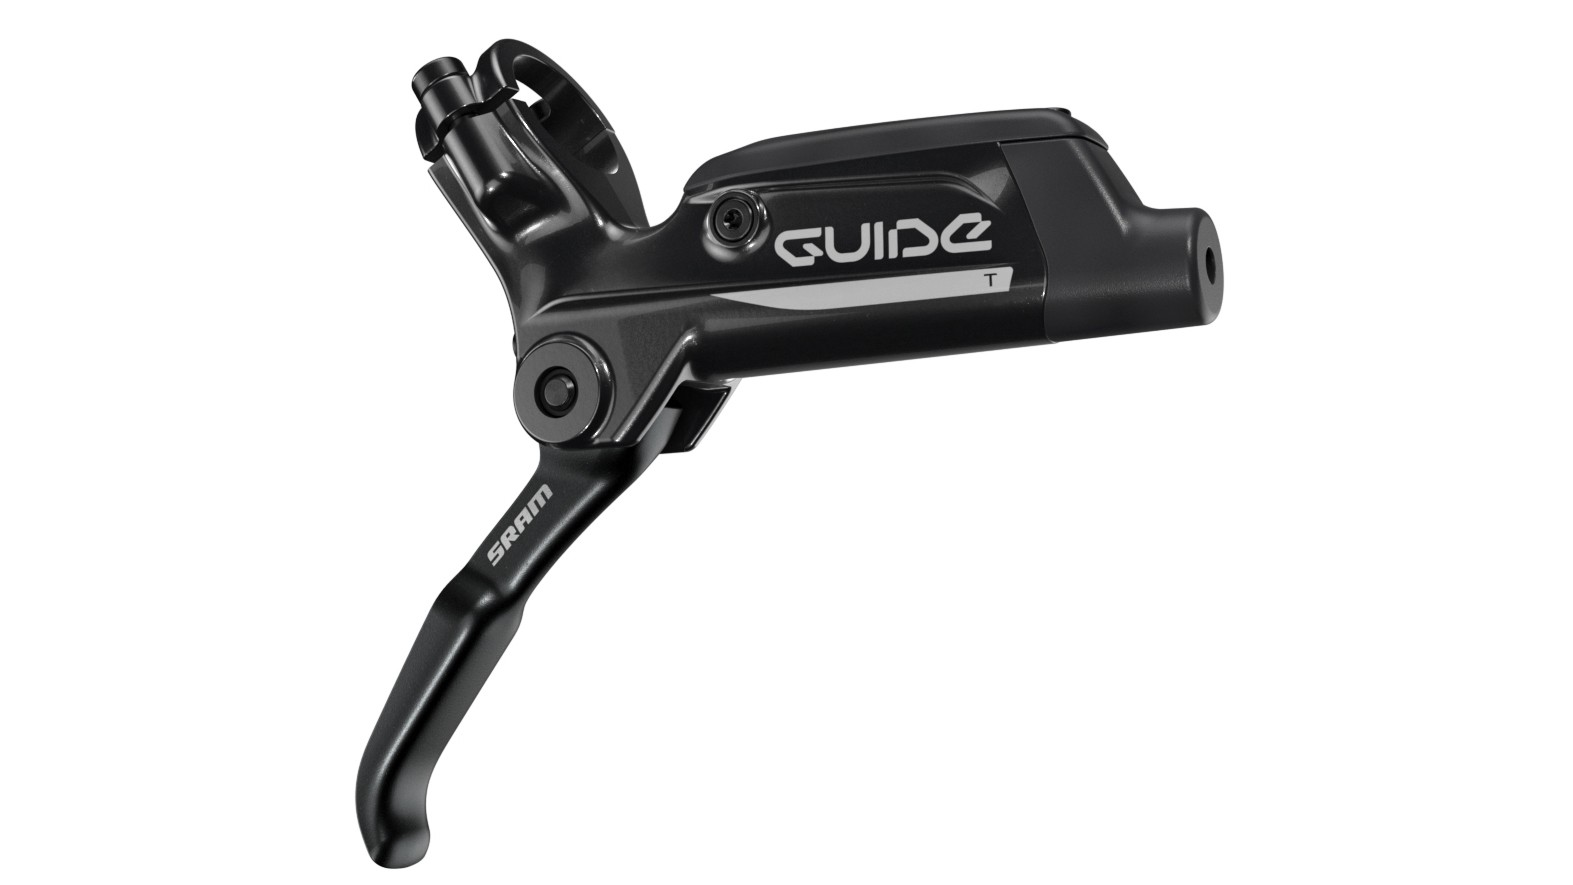 The levers are ambidextrous but do away with the tool-free reach adjust and SwingLink tech